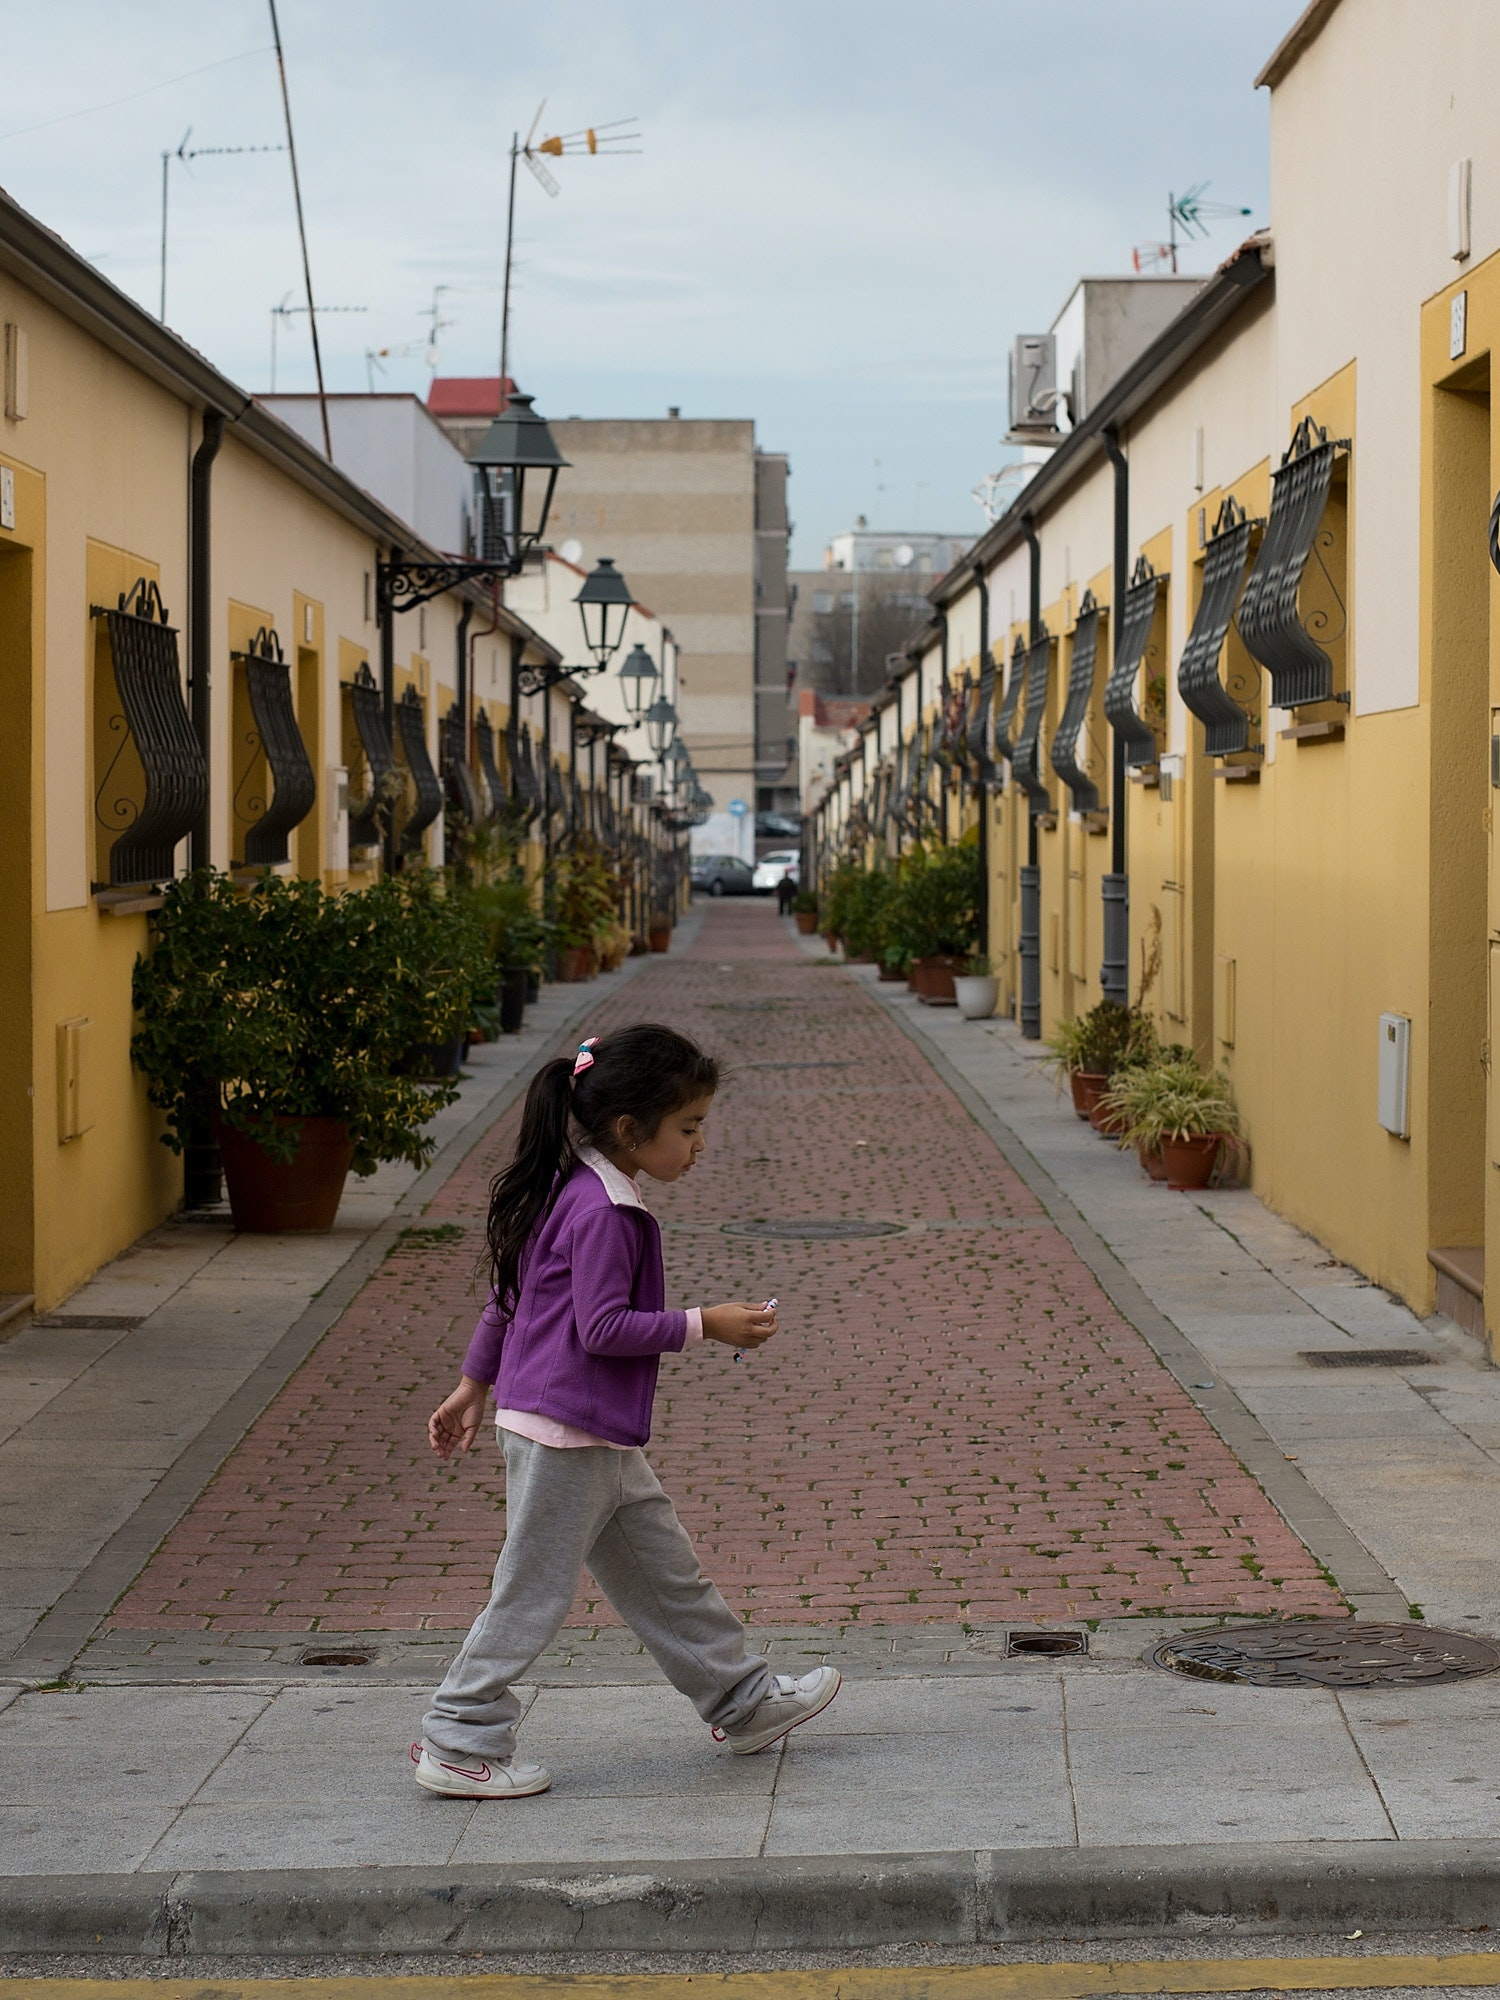 A girl walks in the street on December 17, 2015 in Parla, near Madrid, Spain. Over 36 million Spaniards will flock to the polls on Sunday December 20, 2015 to vote for 350 members of the parliament and 208 senators. For the first time since 1982, the two traditional Spanish political parties, right-wing Partido Popula (People's Party) and centre-left wing Partido Socialista Obrero Espanol PSOE (Spanish Socialist Workers' Party), are holding a tight election race with two new contenders, Ciudadanos (Citizens) and Podemos (We Can) attracting right-leaning and left-leaning voters respectively.